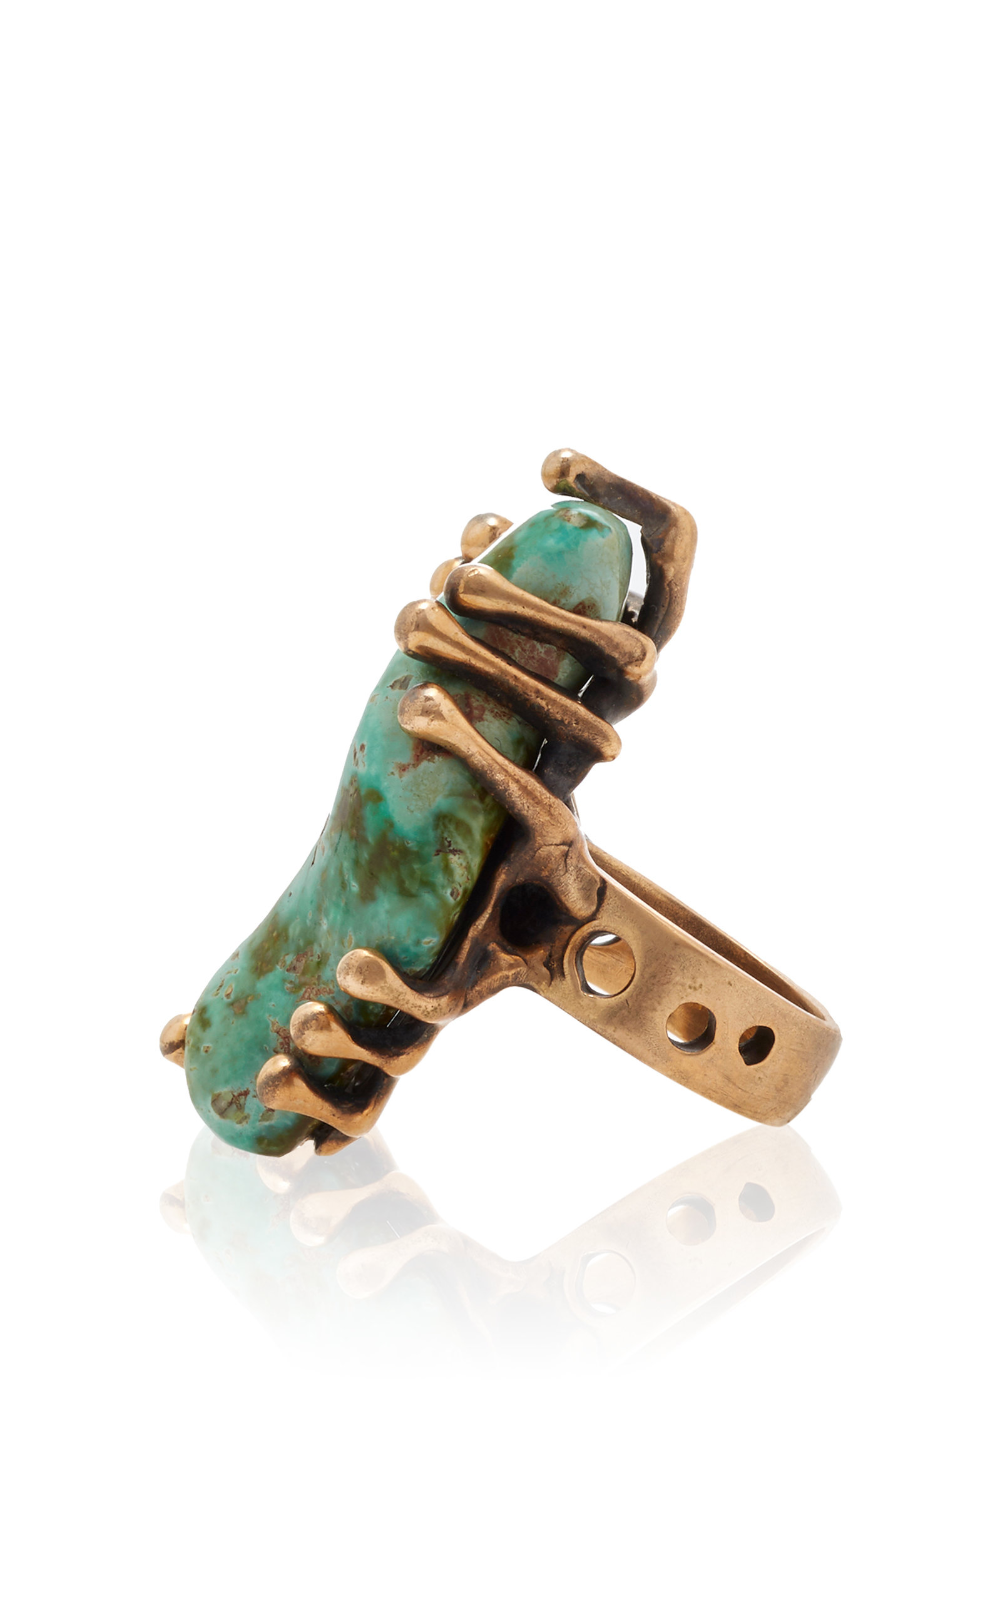 One of a Kind Kingman Turquoise Imperial Ring